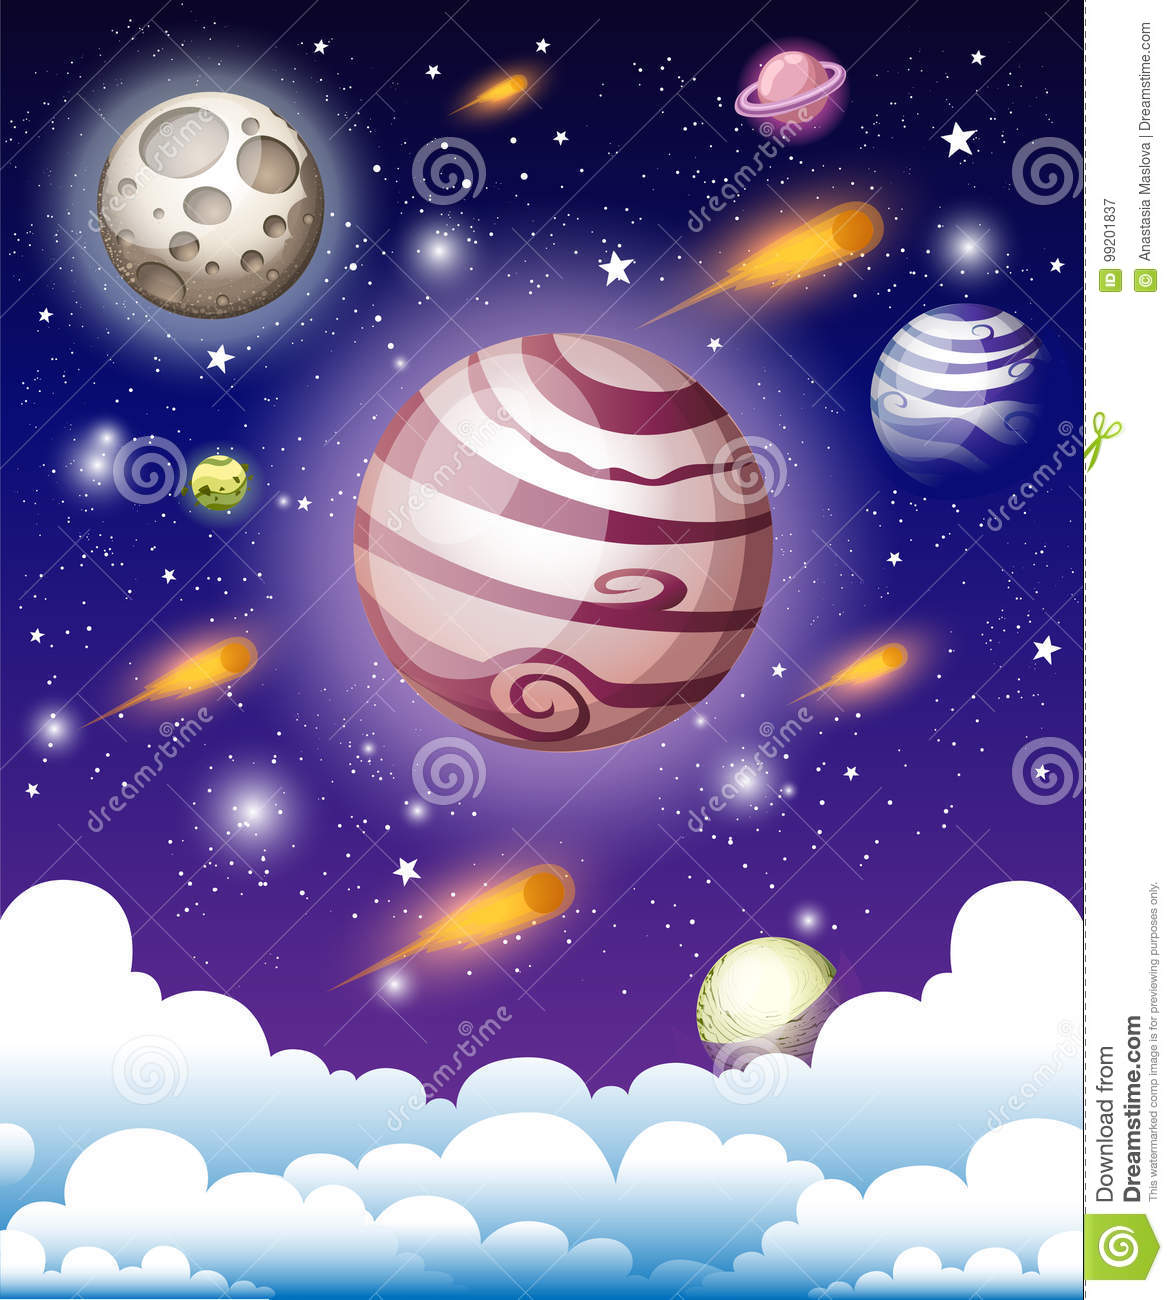 Cosmic Galaxy Background with nebula, stardust and bright shining stars. Vector illustration for your design, artworks space Web s